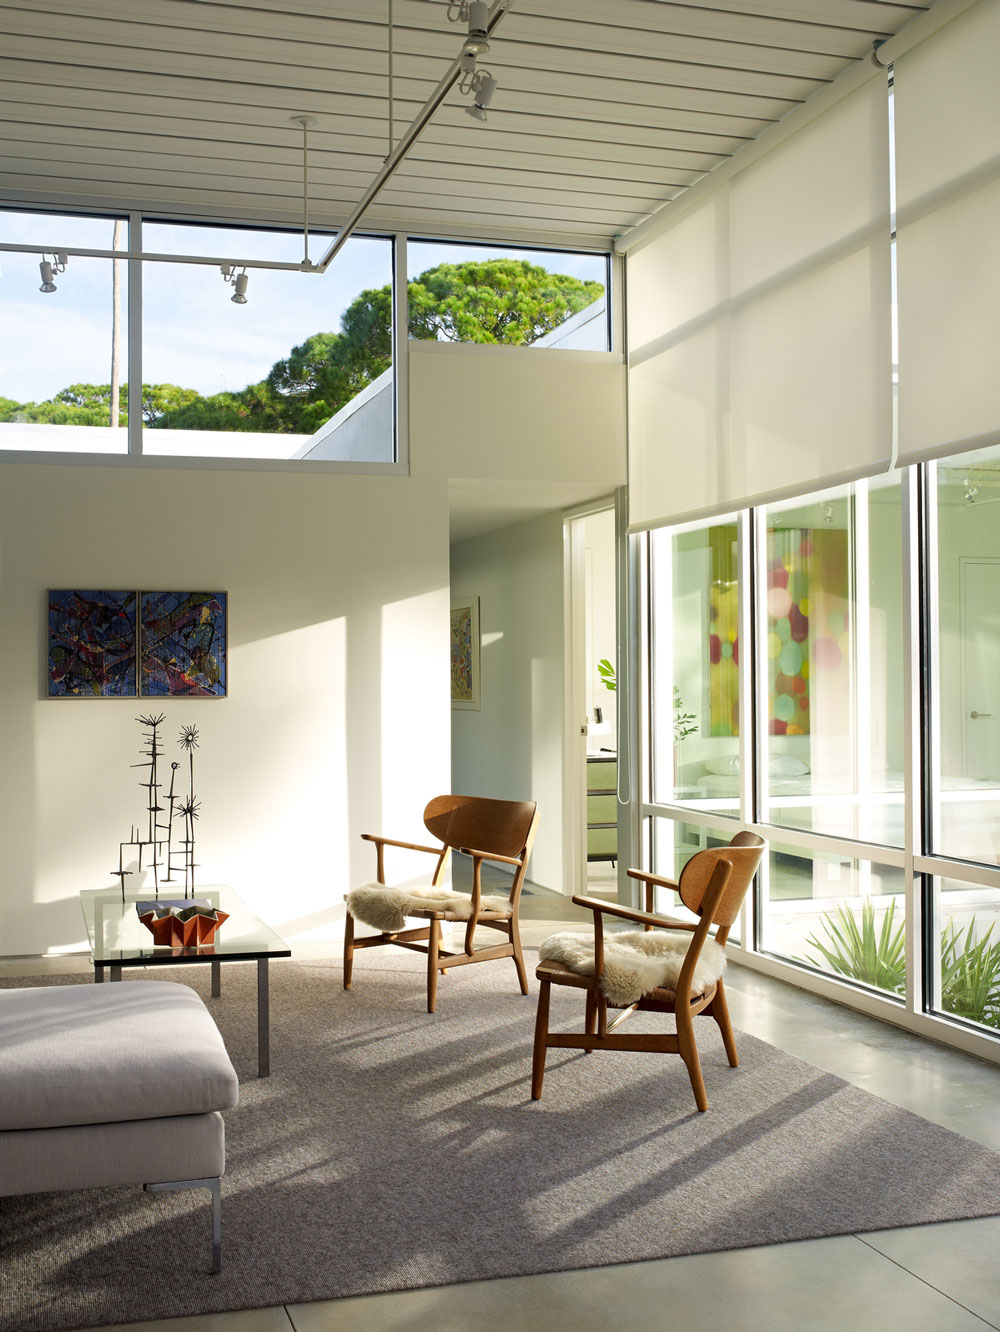 Business Design A House And Window: 12 Clerestory Windows In Modern Home Design